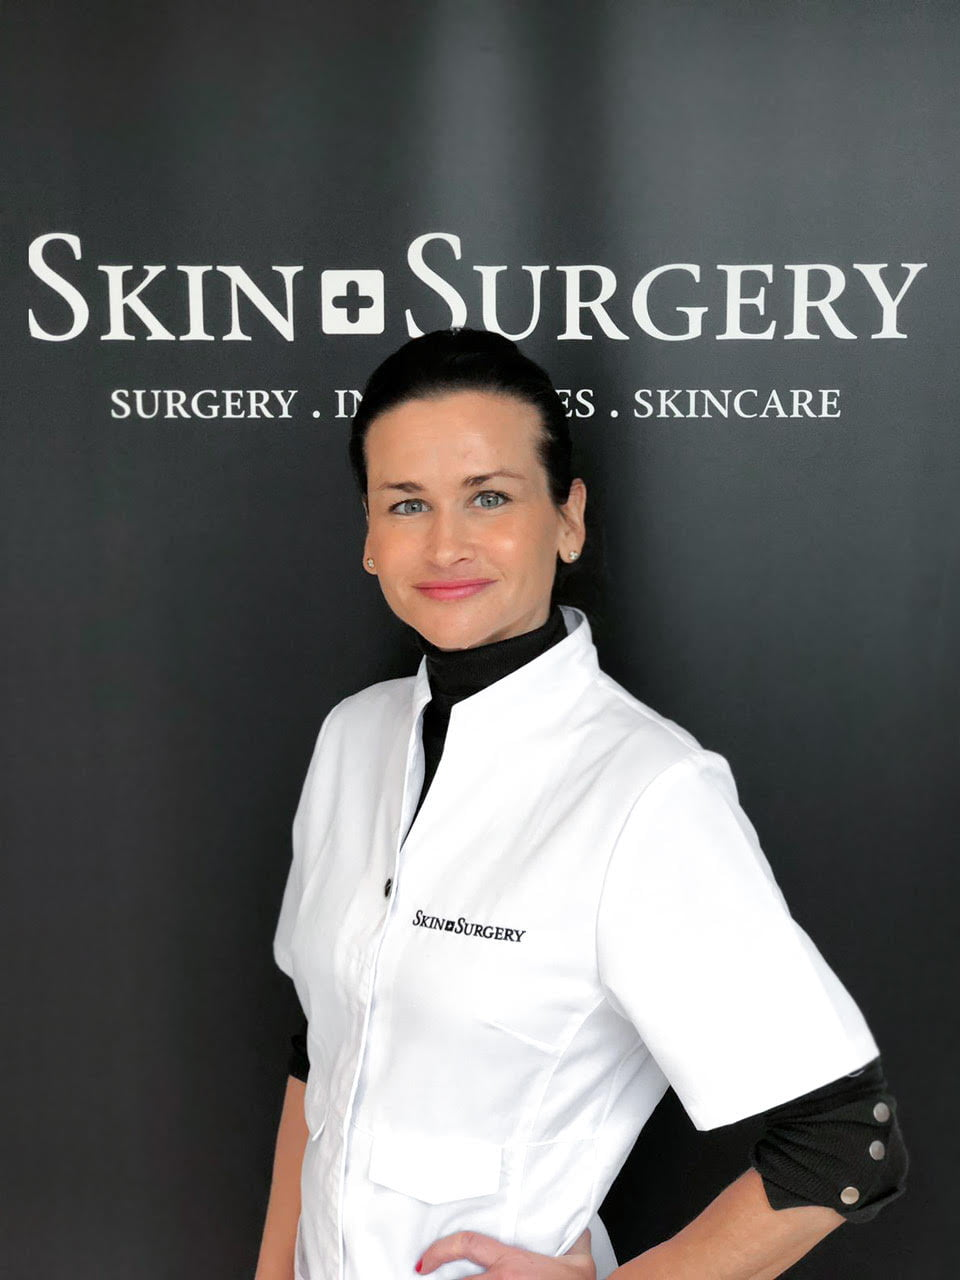 Skin + Surgery Clinics | Onetec in The Hague